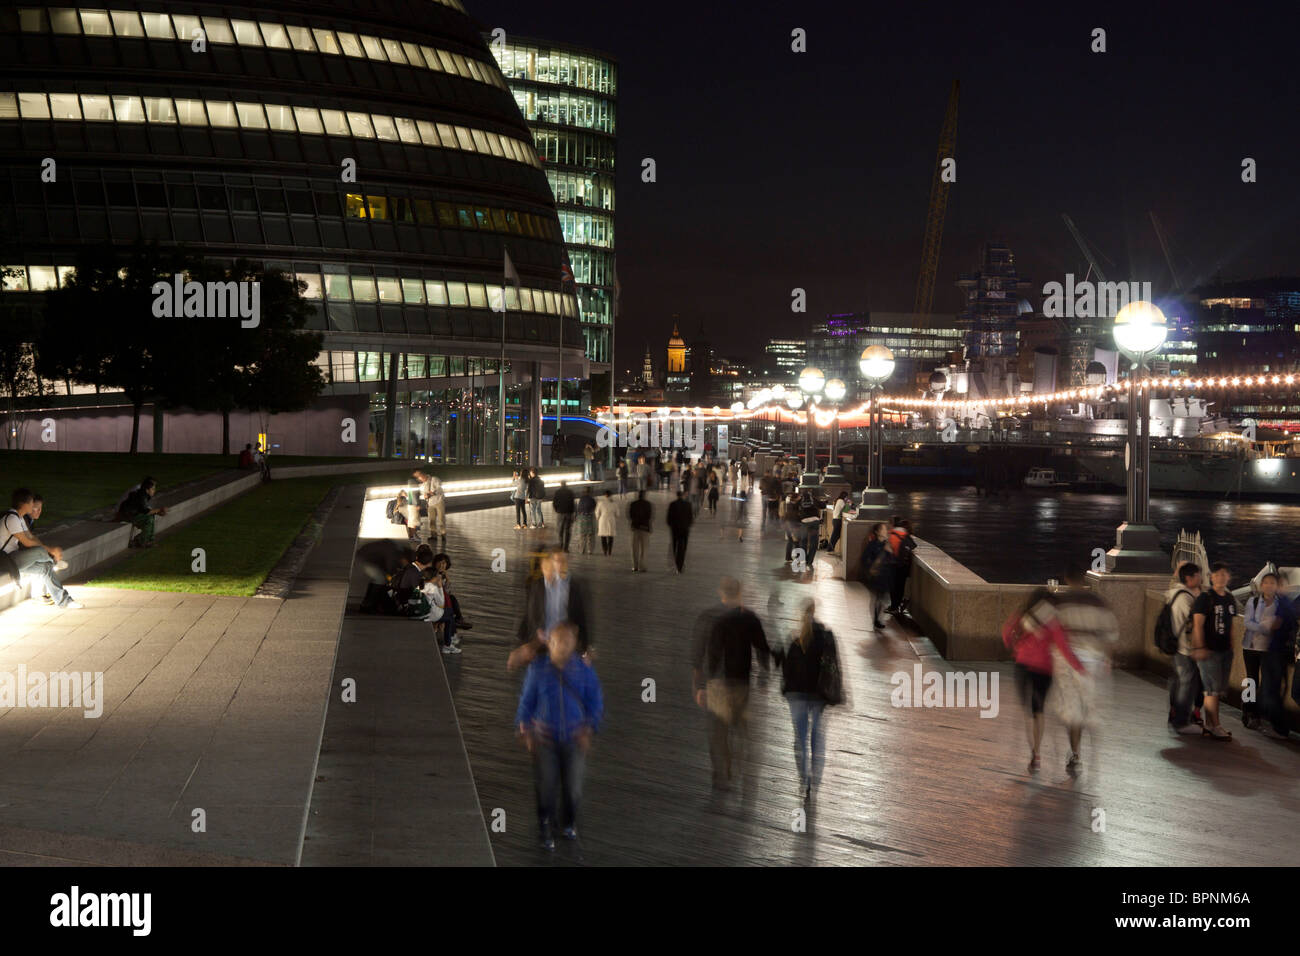 London City Hall - Südufer - London Stockbild